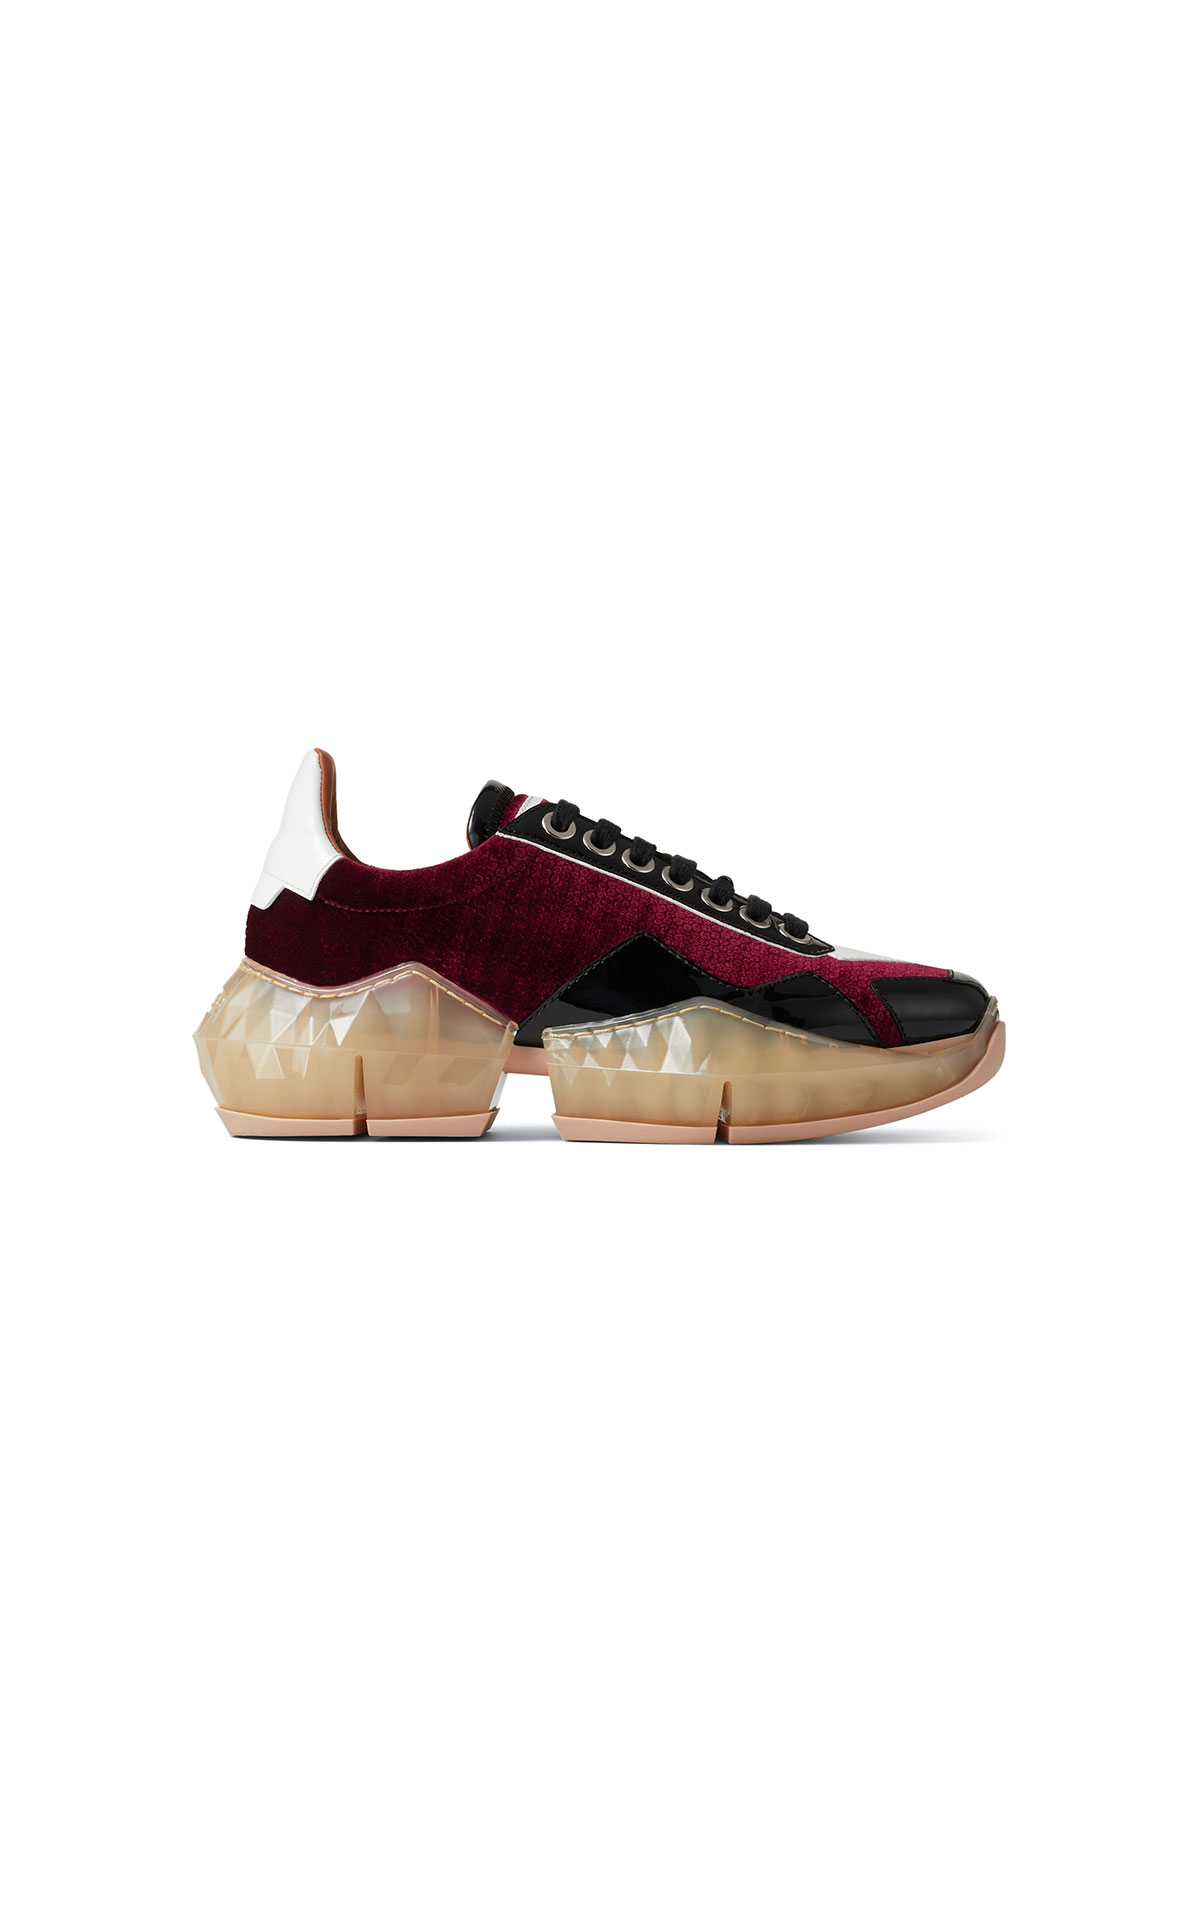 La Vallée Village Jimmy Choo Bordeaux sneakers